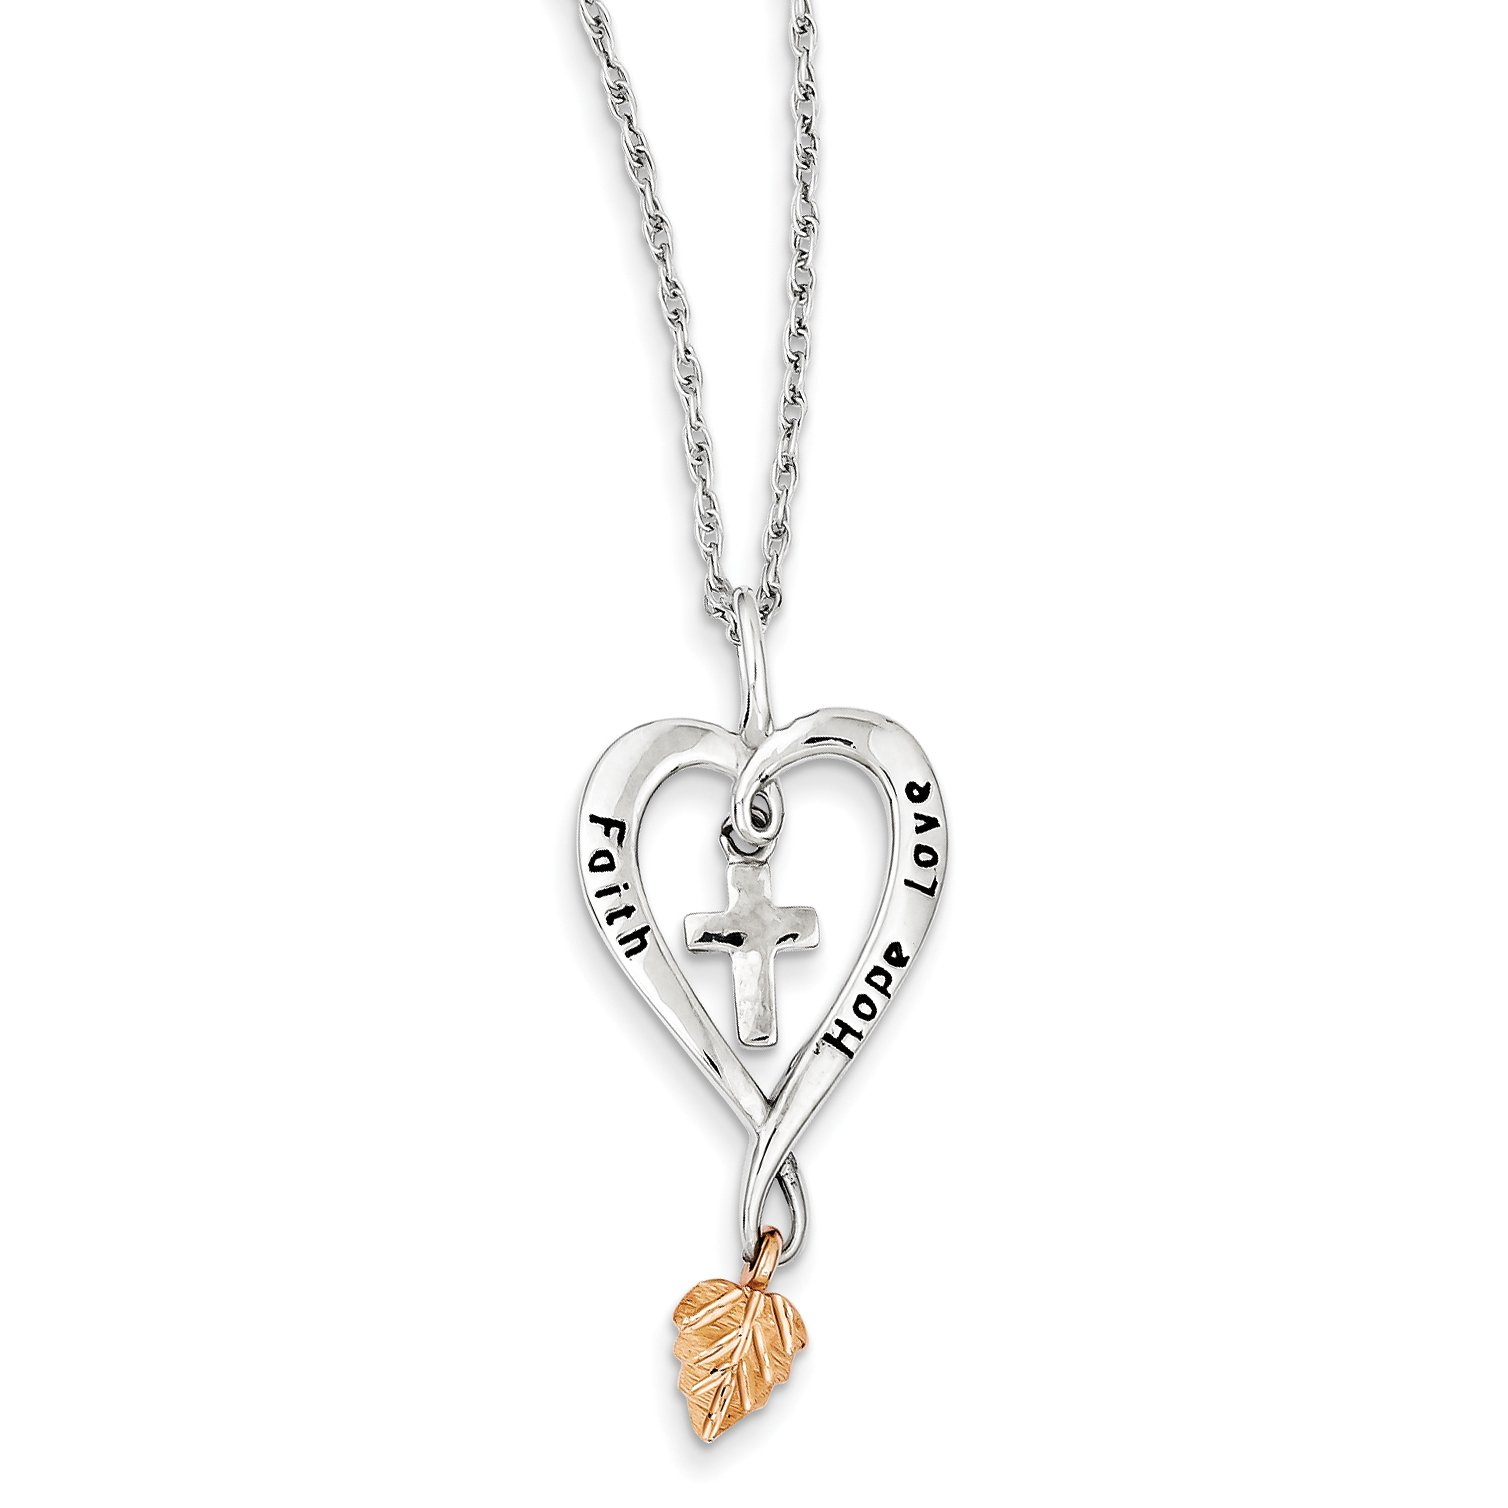 ICE CARATS 925 Sterling Silver 12k Rose Leaf Faith Hope Love Heart Chain Necklace S/love Fine Jewelry Gift For Women Heart